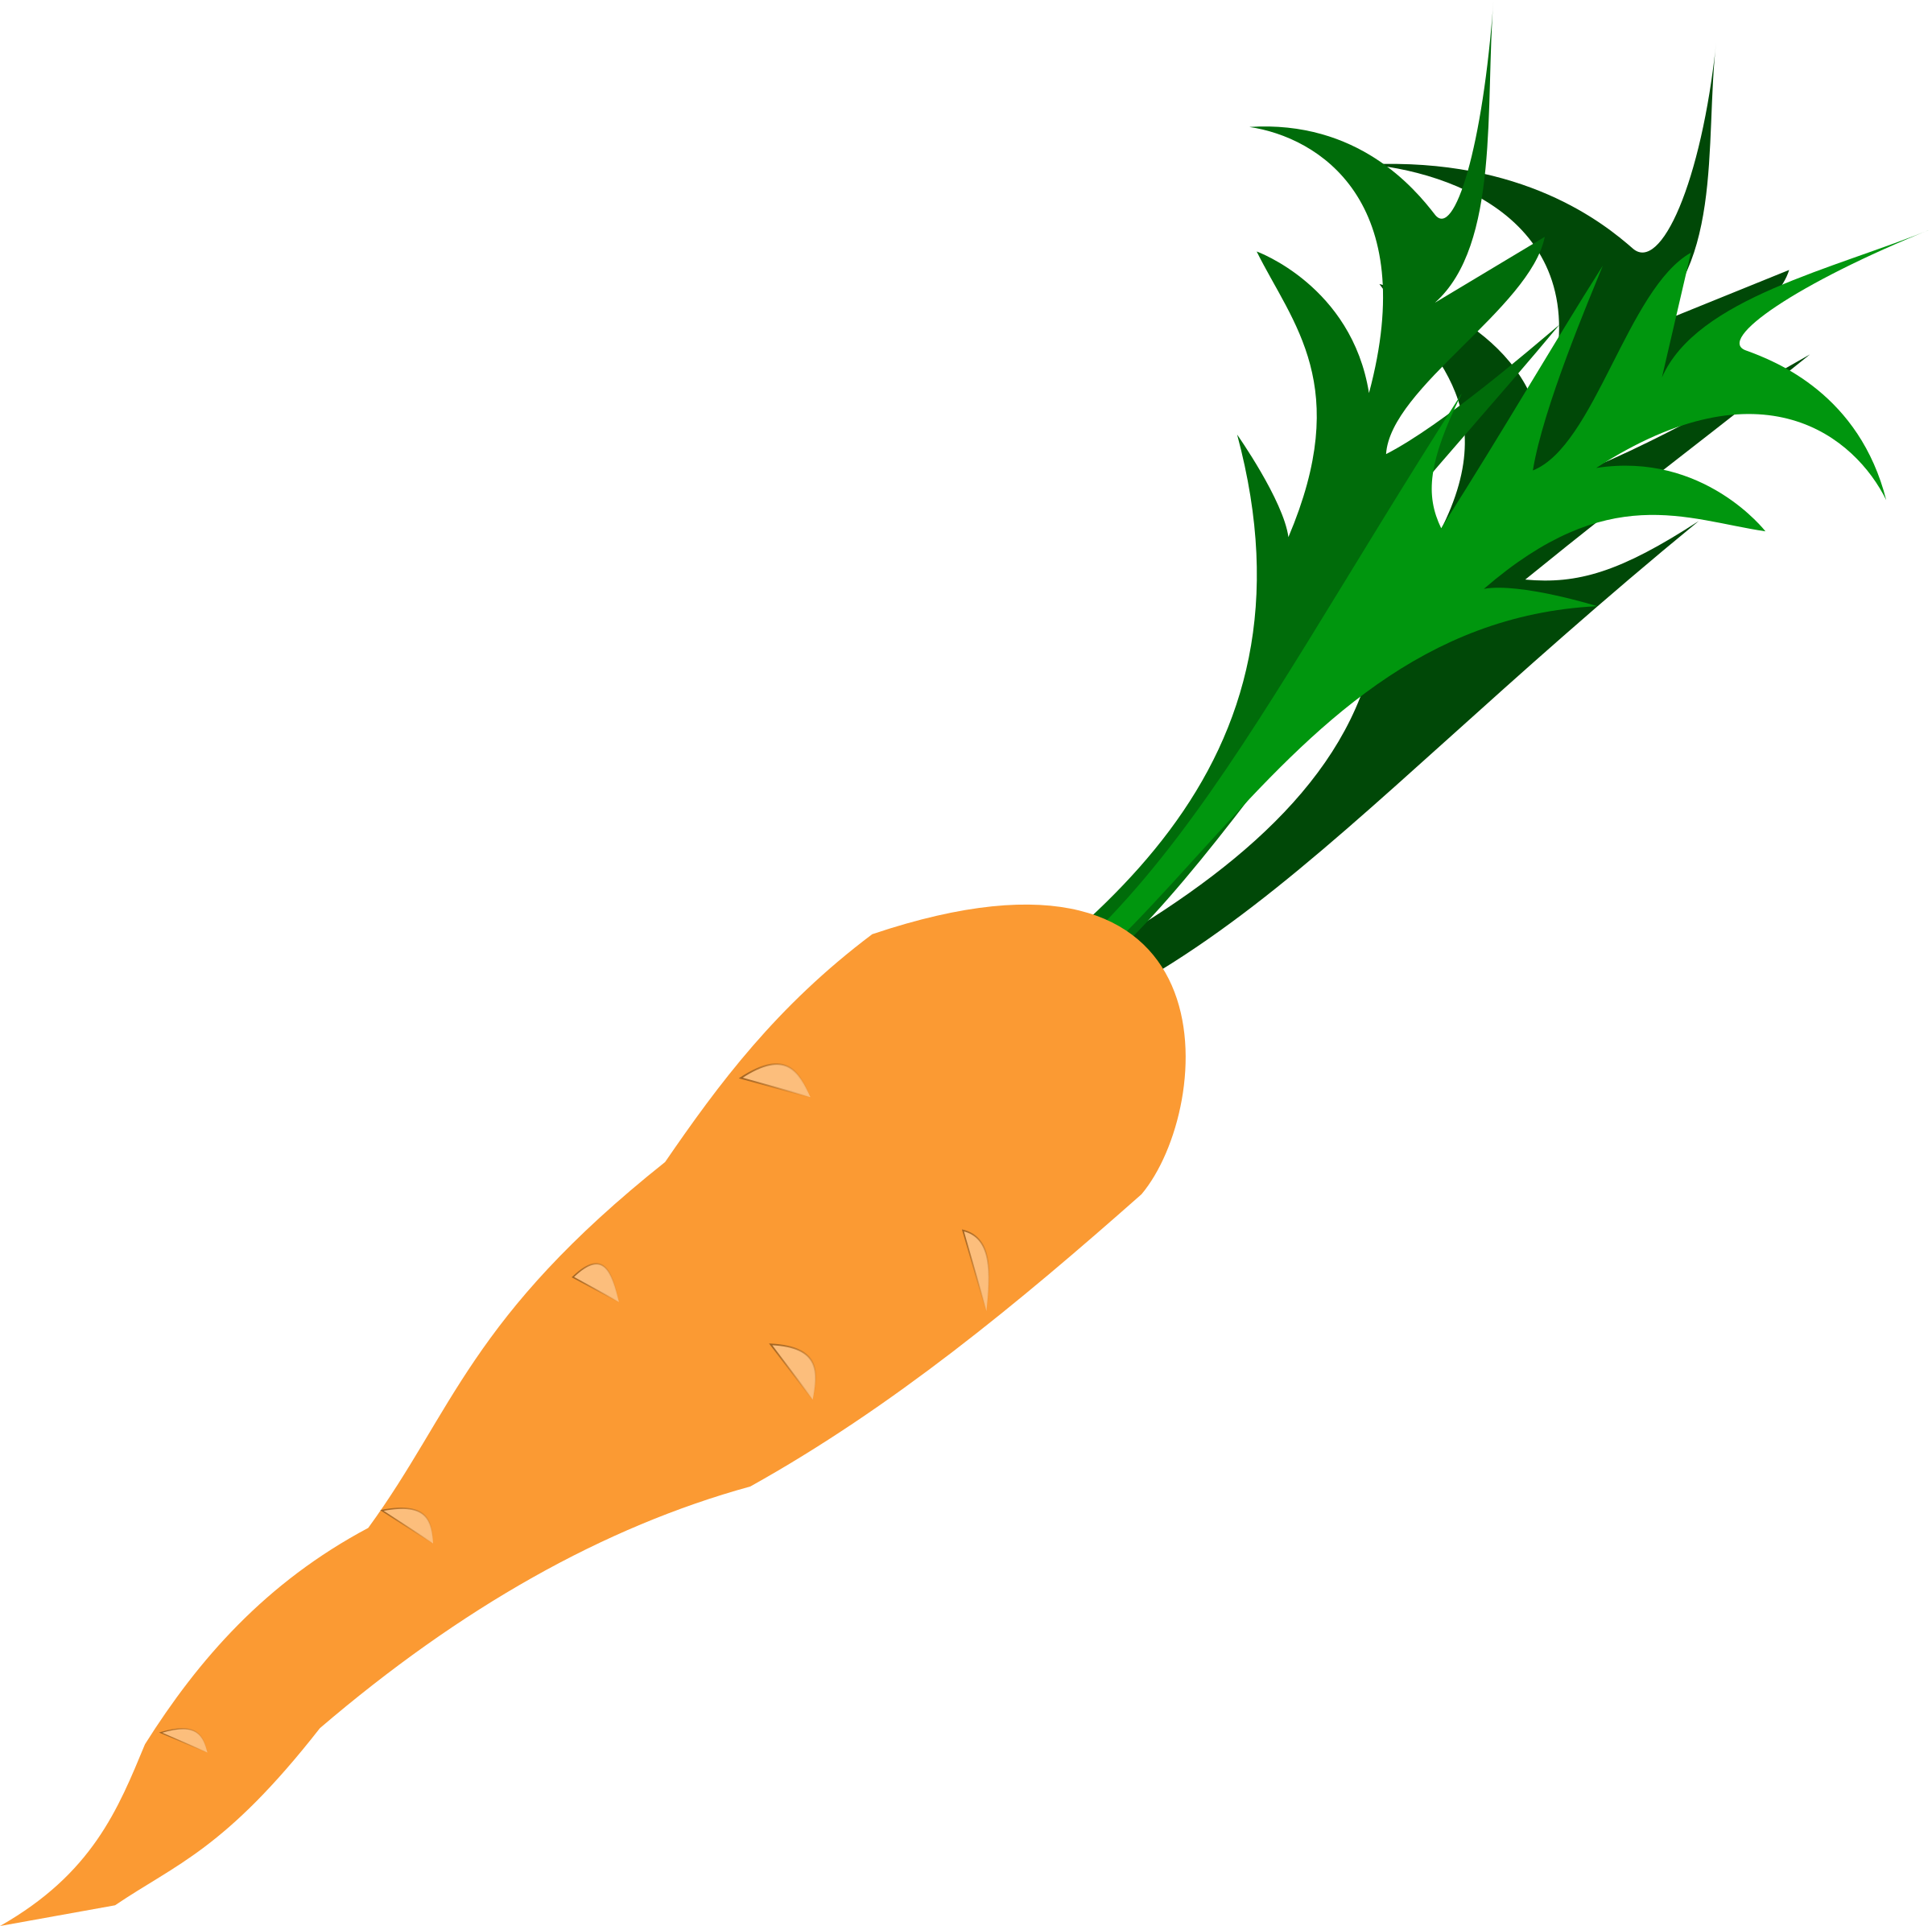 Carrot by bravebug